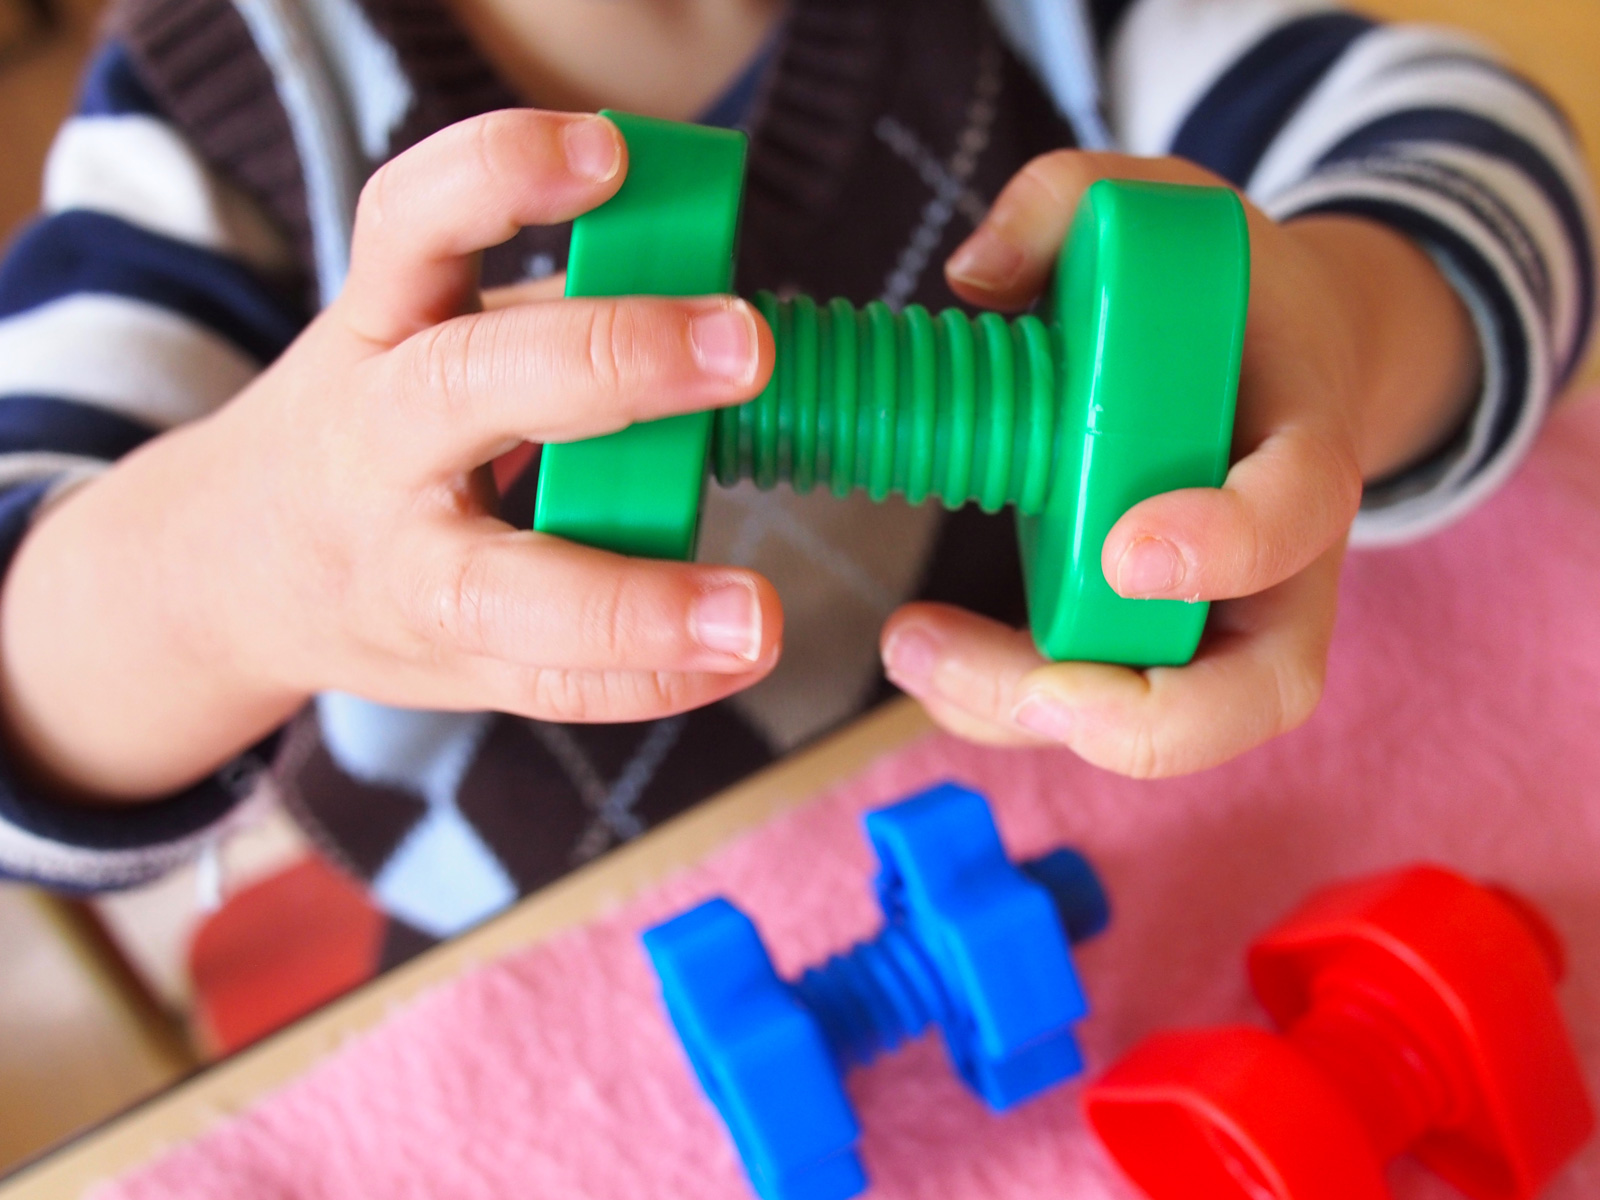 Hand-eye coordination and motor skills are a main focus at this level.